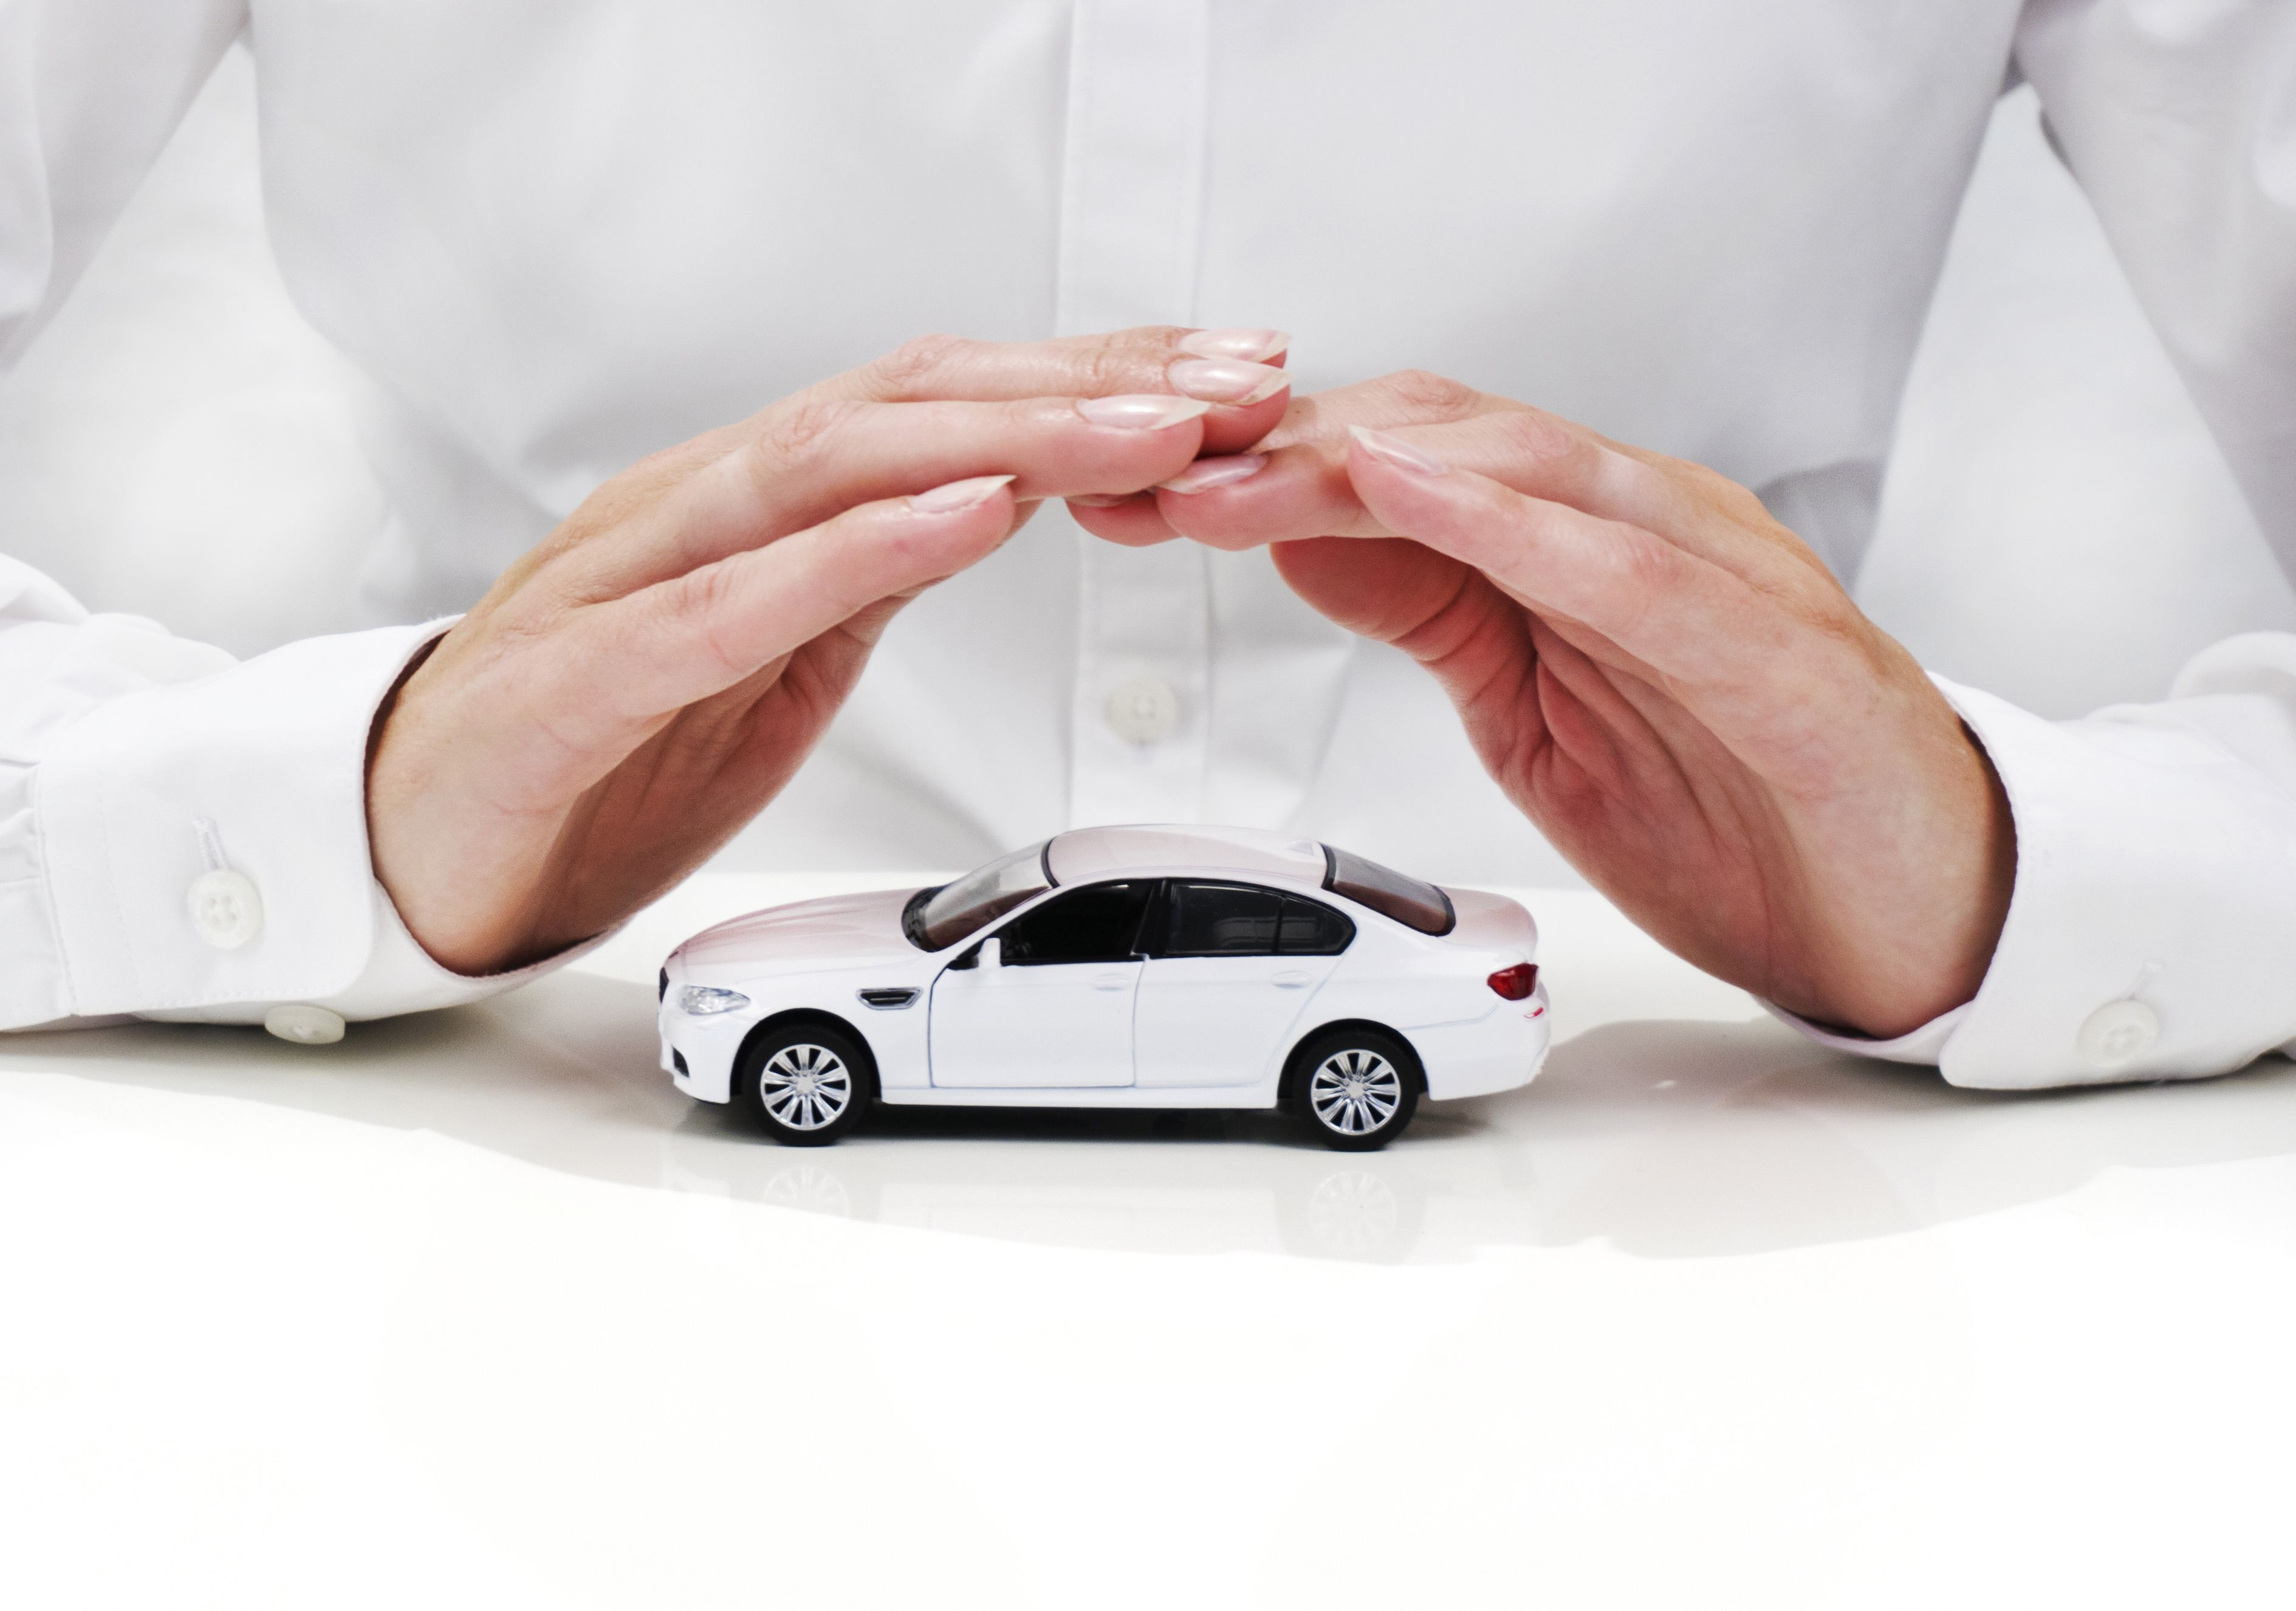 Things You Need To Consider Before Purchasing Auto Insurance